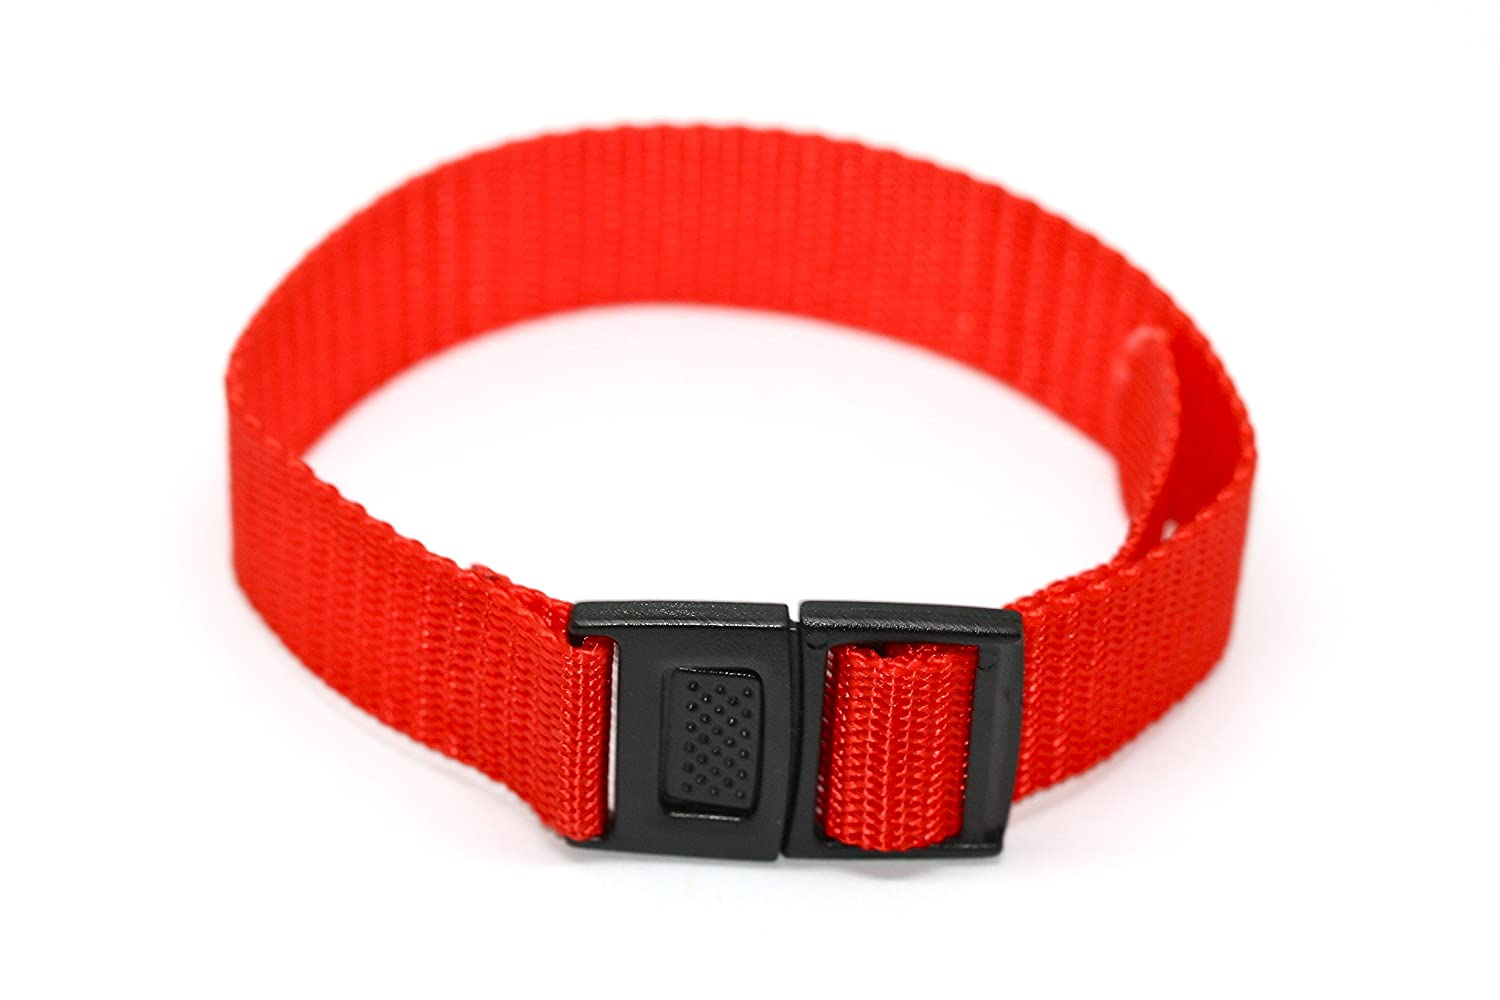 bd72010397b Amazon.com  Vintage Retro 18mm Red Nylon Slip Thru One Piece Watch Band  Strap Fits Weekender and Others  Watches